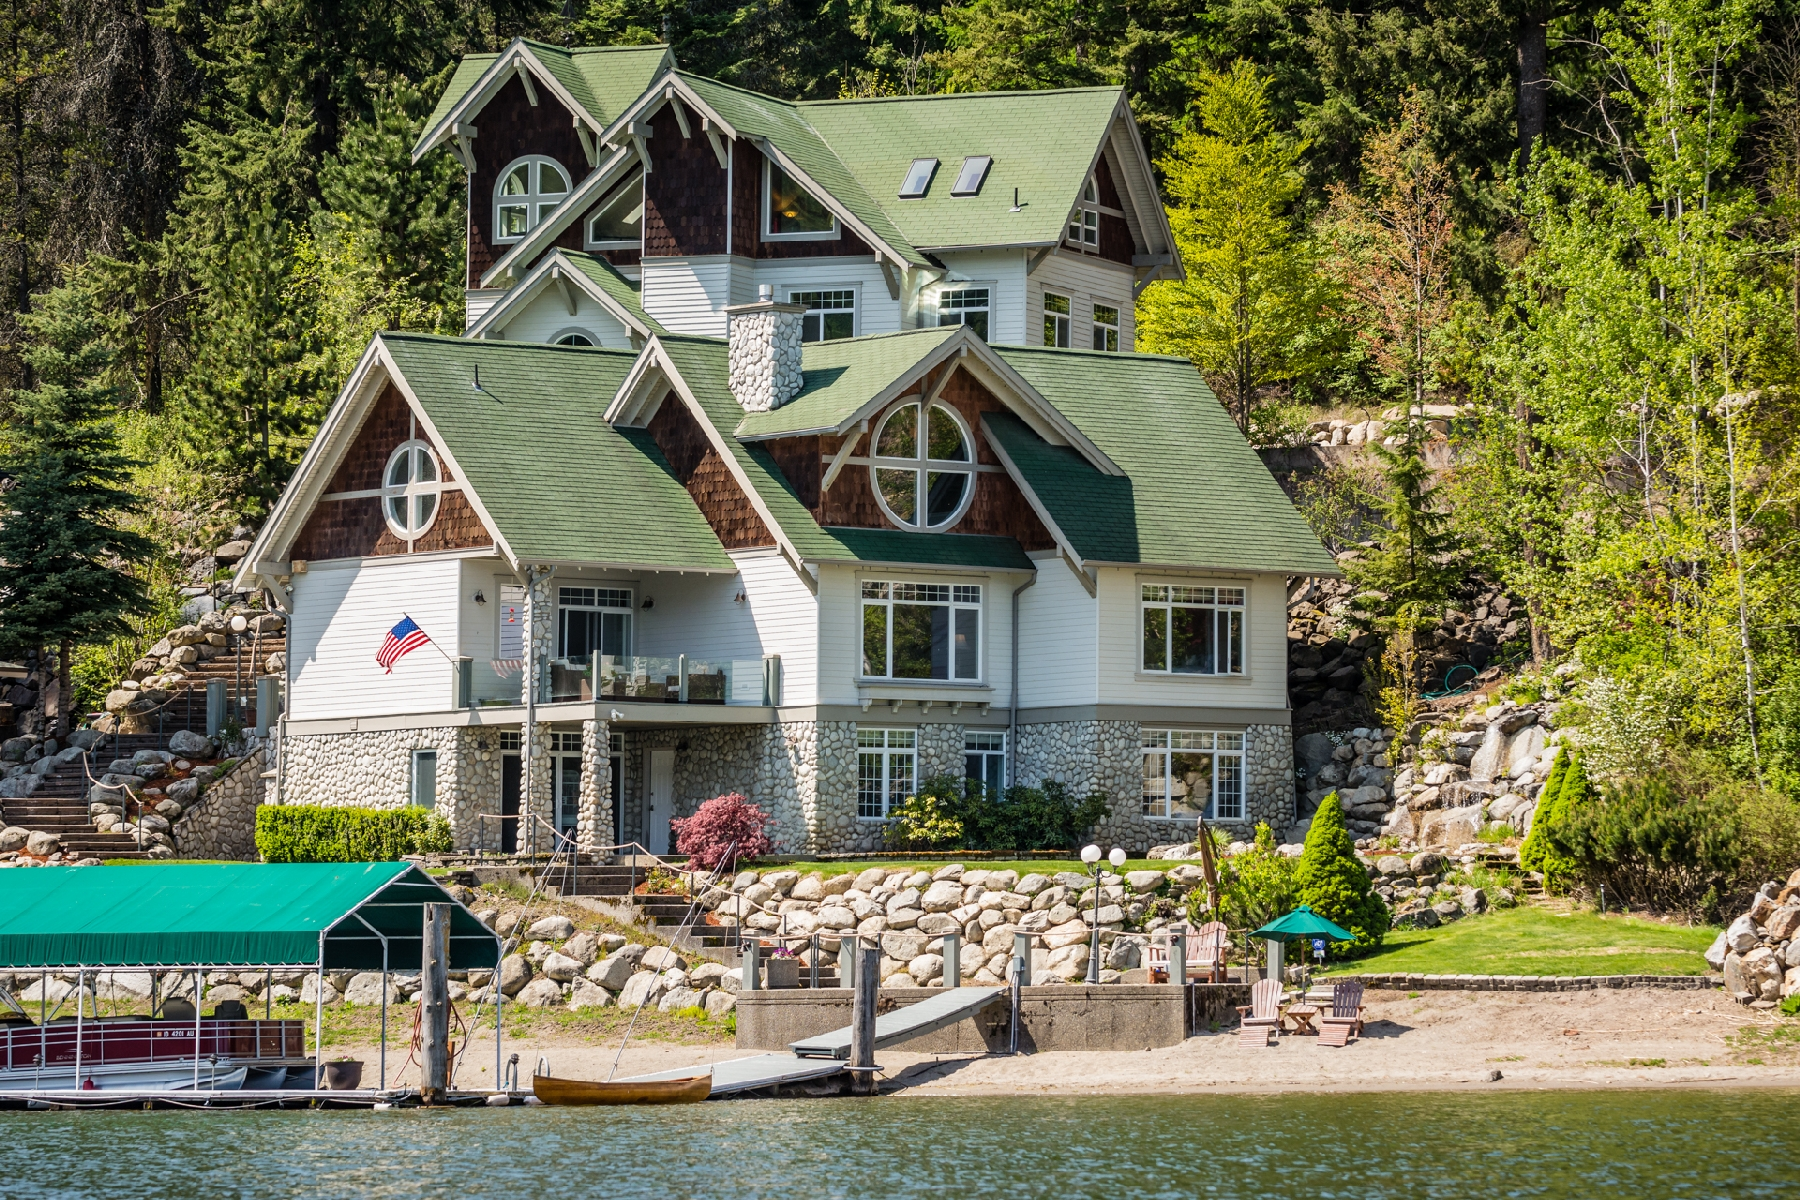 Single Family Home for Sale at Lakefront Estate 3750 S. Westway Dr Coeur D Alene, Idaho 83814 United States